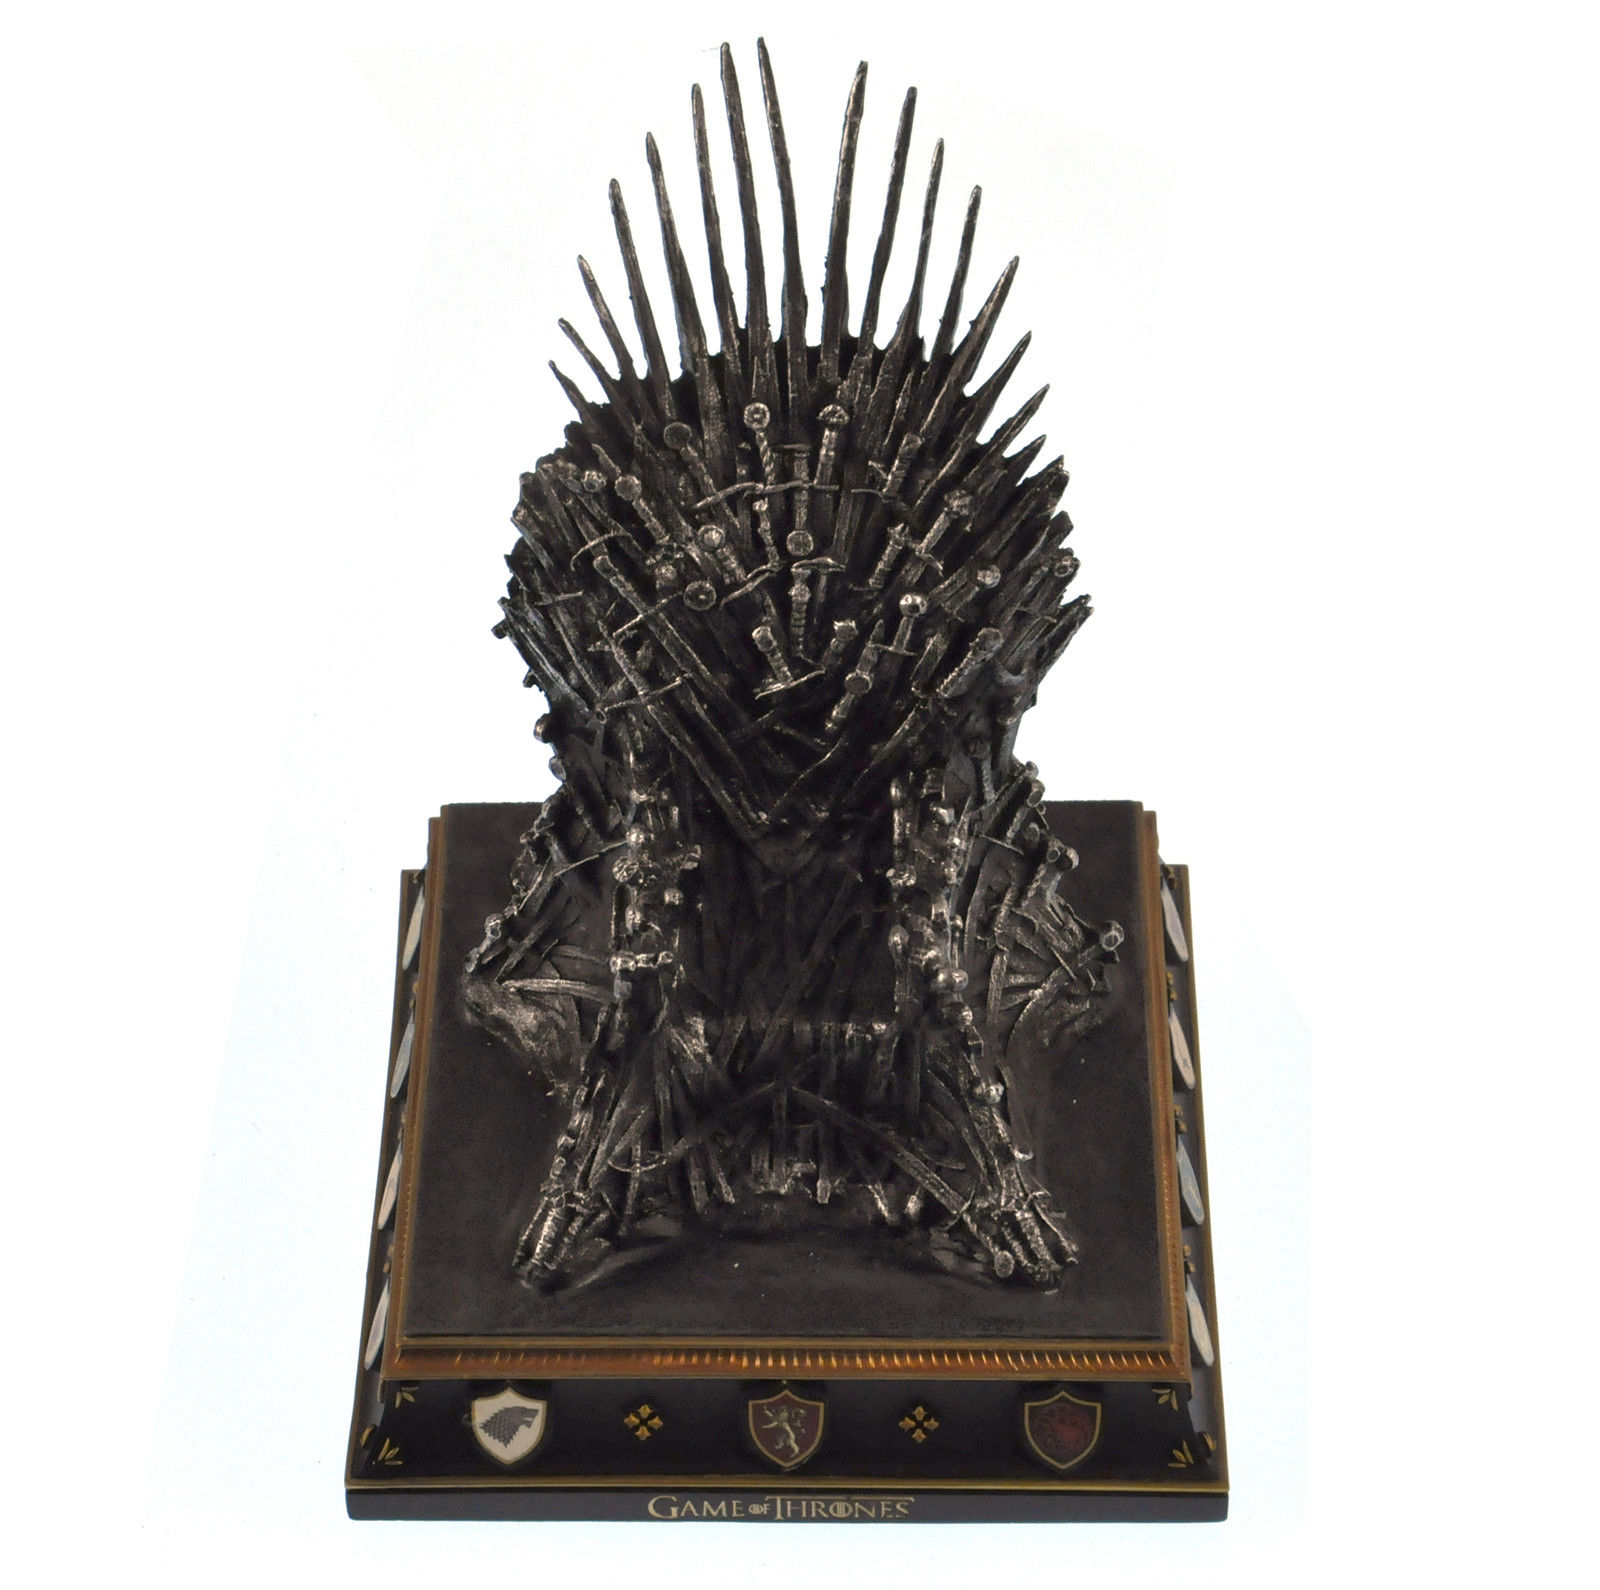 game of throne replica 1.jpg